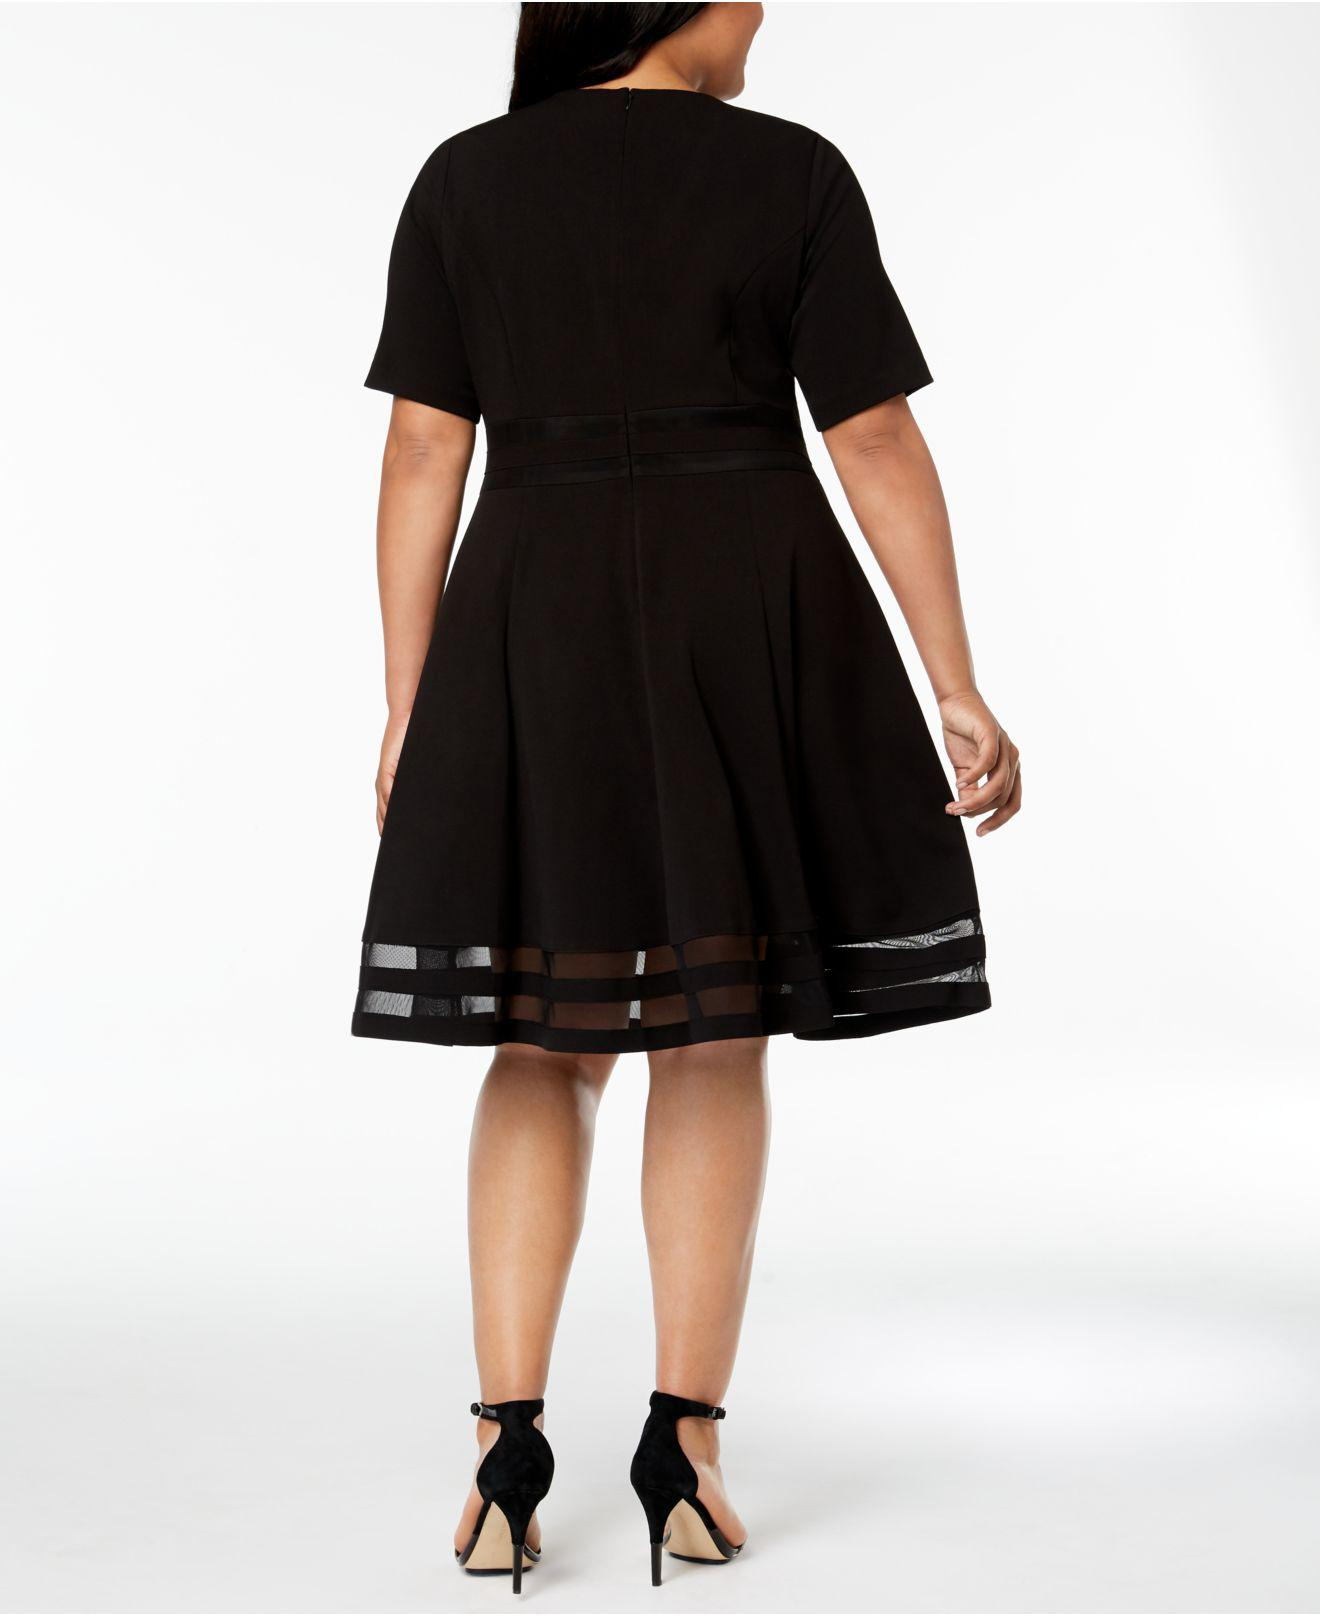 aab995cbc715b Lyst - Calvin Klein Plus Size Illusion-inset Fit   Flare Dress in Black